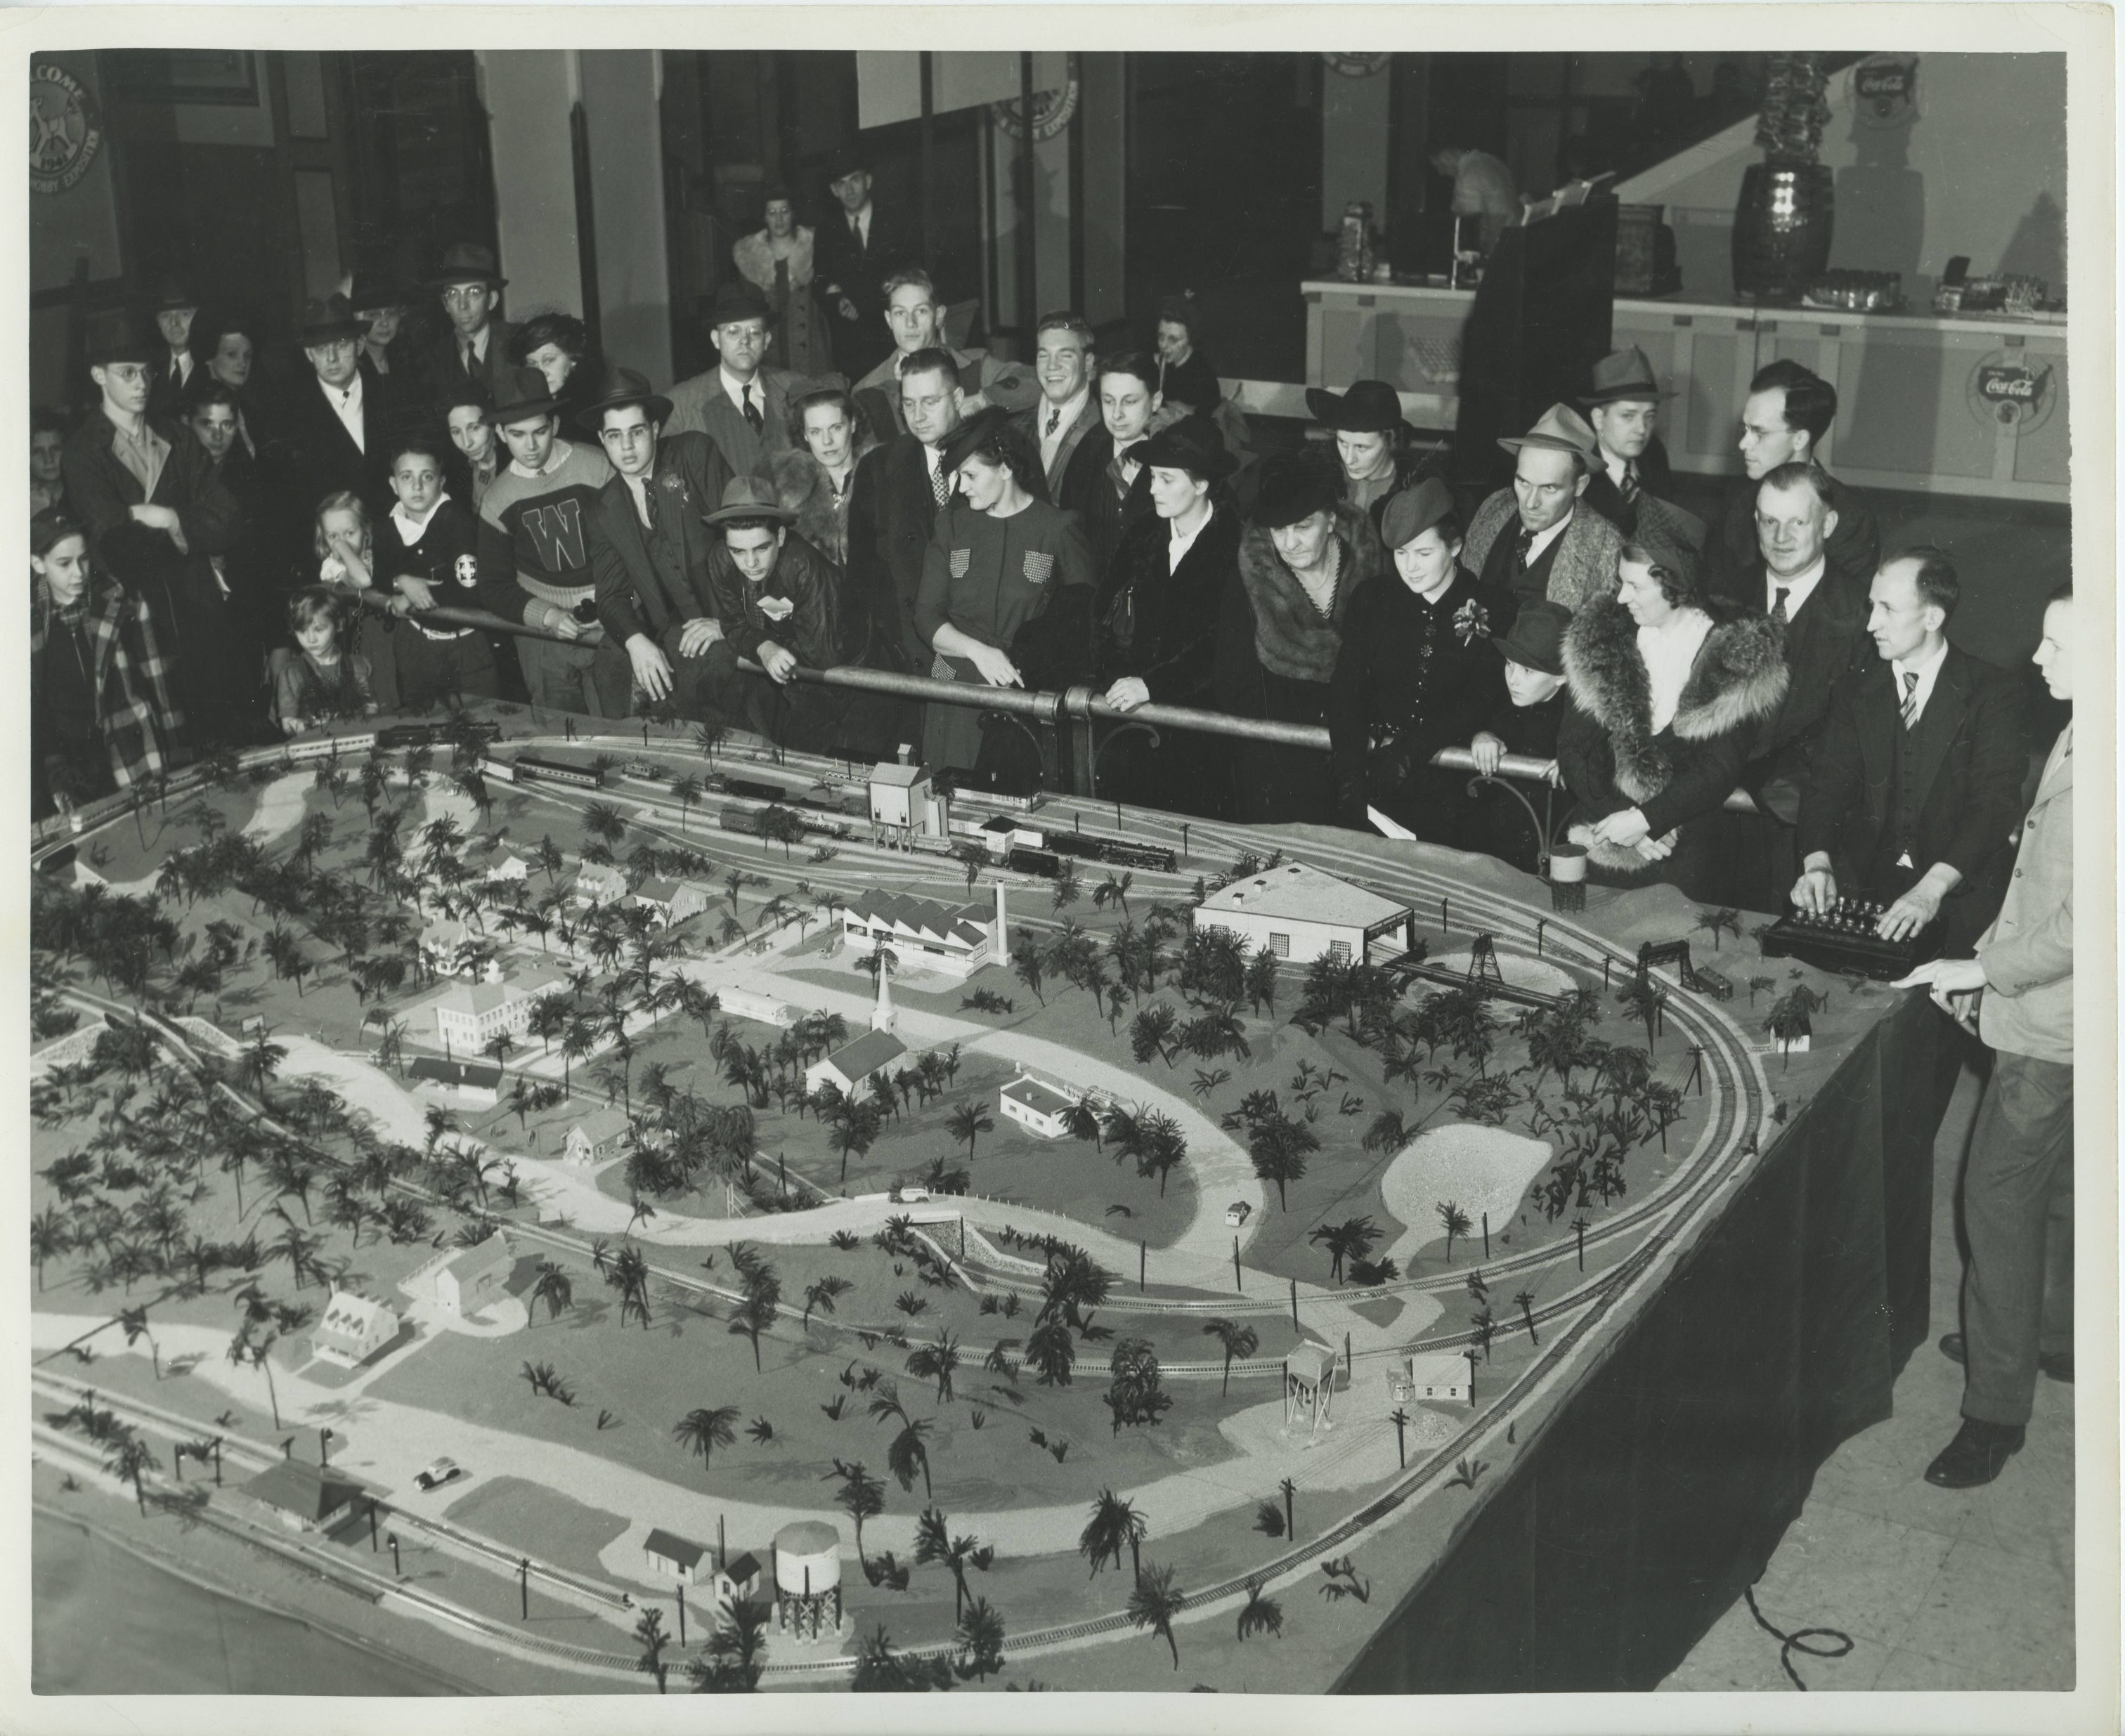 A crowd gathers around a large scale model railroad at the Wisconsin Hobby Exposition in Milwaukee in 1949.